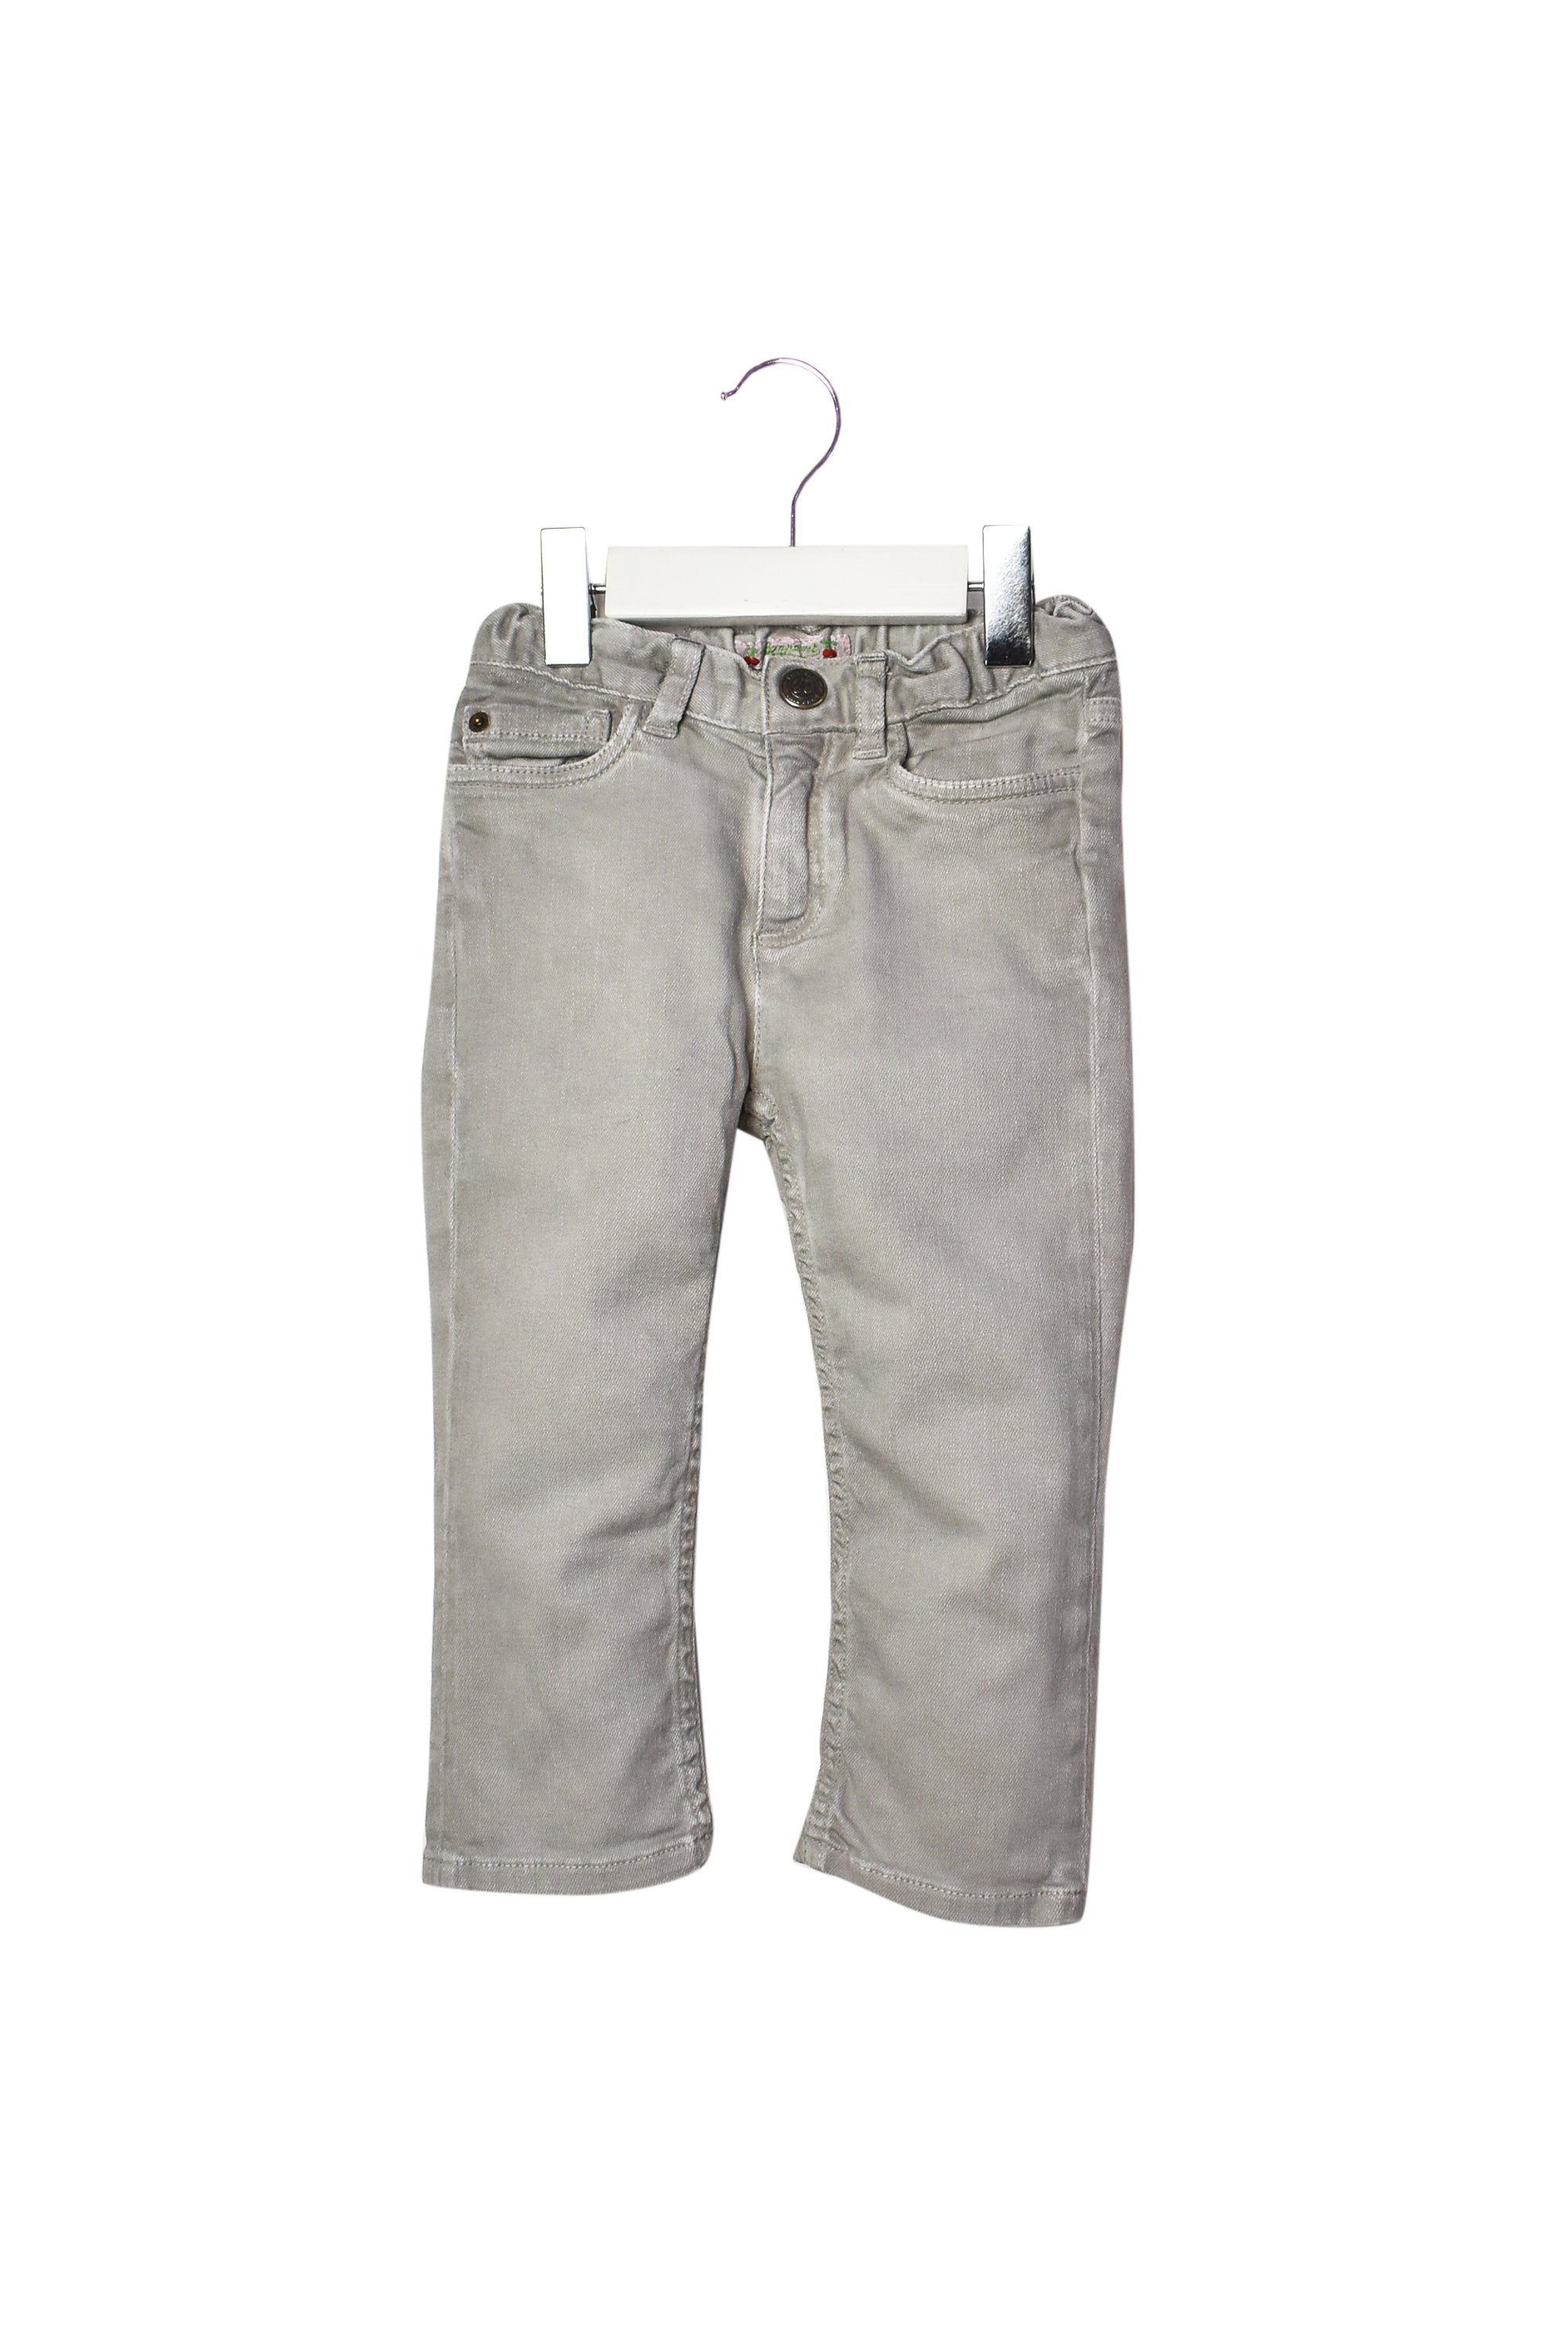 10006697 Bonpoint Kids~Jeans 2T at Retykle